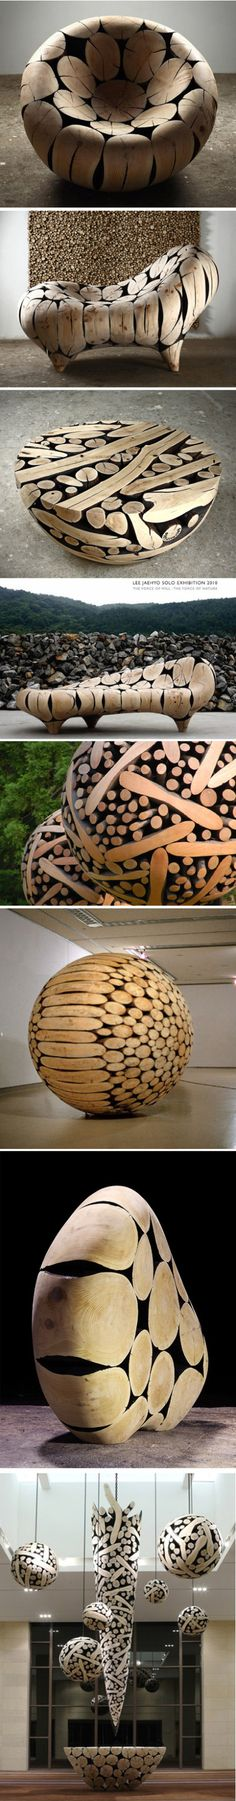 Log Art http://www.leeart.name/Gallery/Wood/Default.asp Lee Jae-Hyo _ 1965 Born in hapchen, Korea